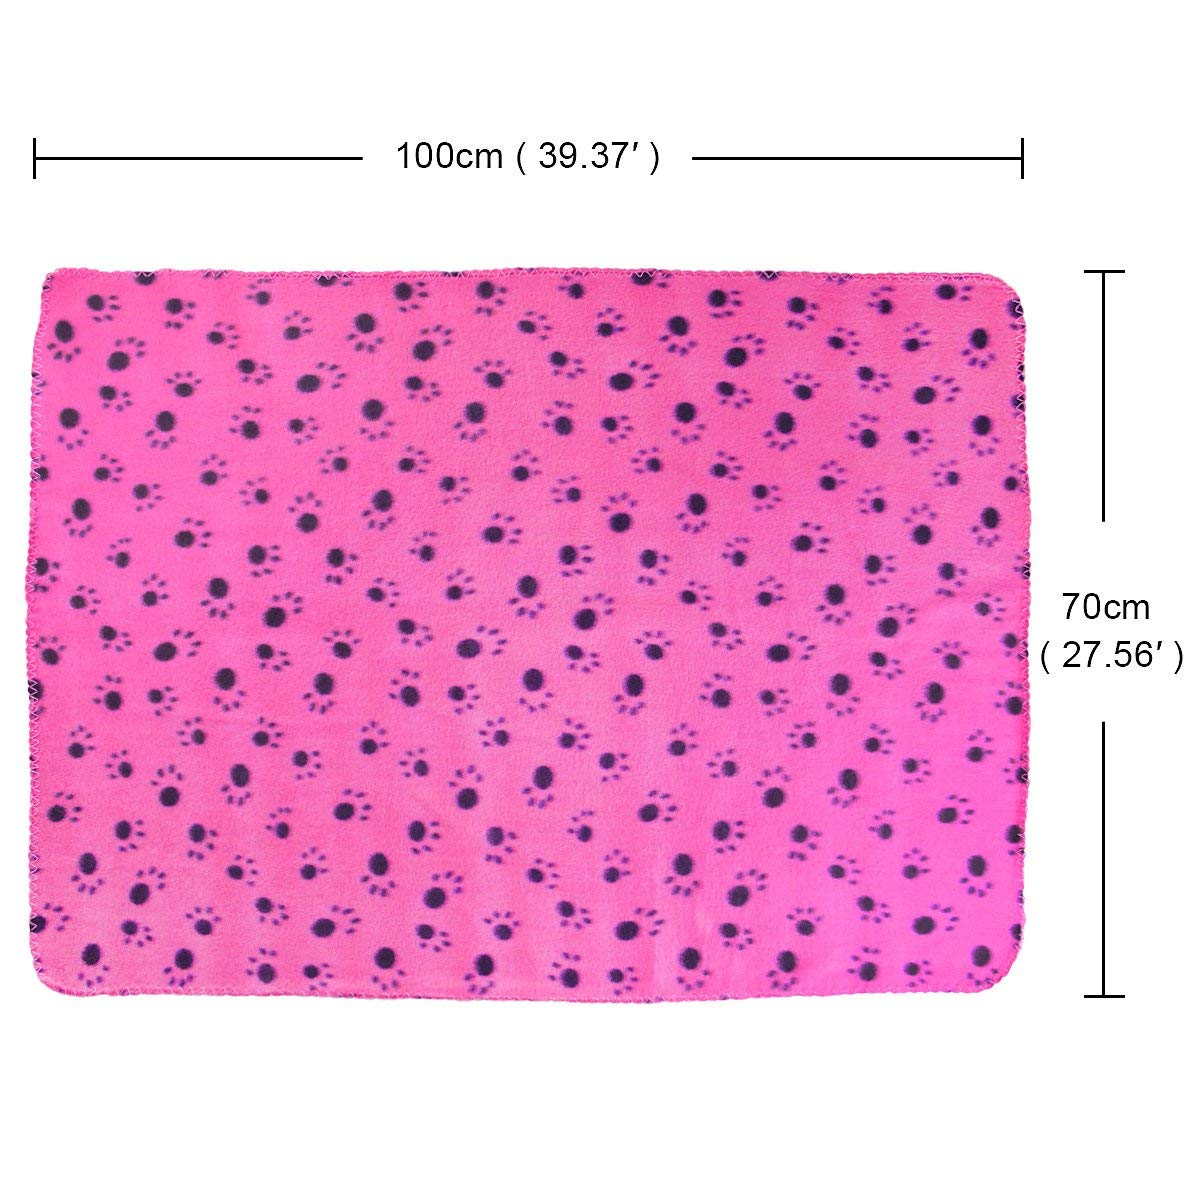 KYC 3 pack 40 x 28 '' Puppy Blanket Cushion Dog Cat Fleece Blankets Pet Sleep Mat Pad Bed Cover with Paw Print Kitten Soft Warm Blanket for Animals (Mixed A) by KYC (Image #8)